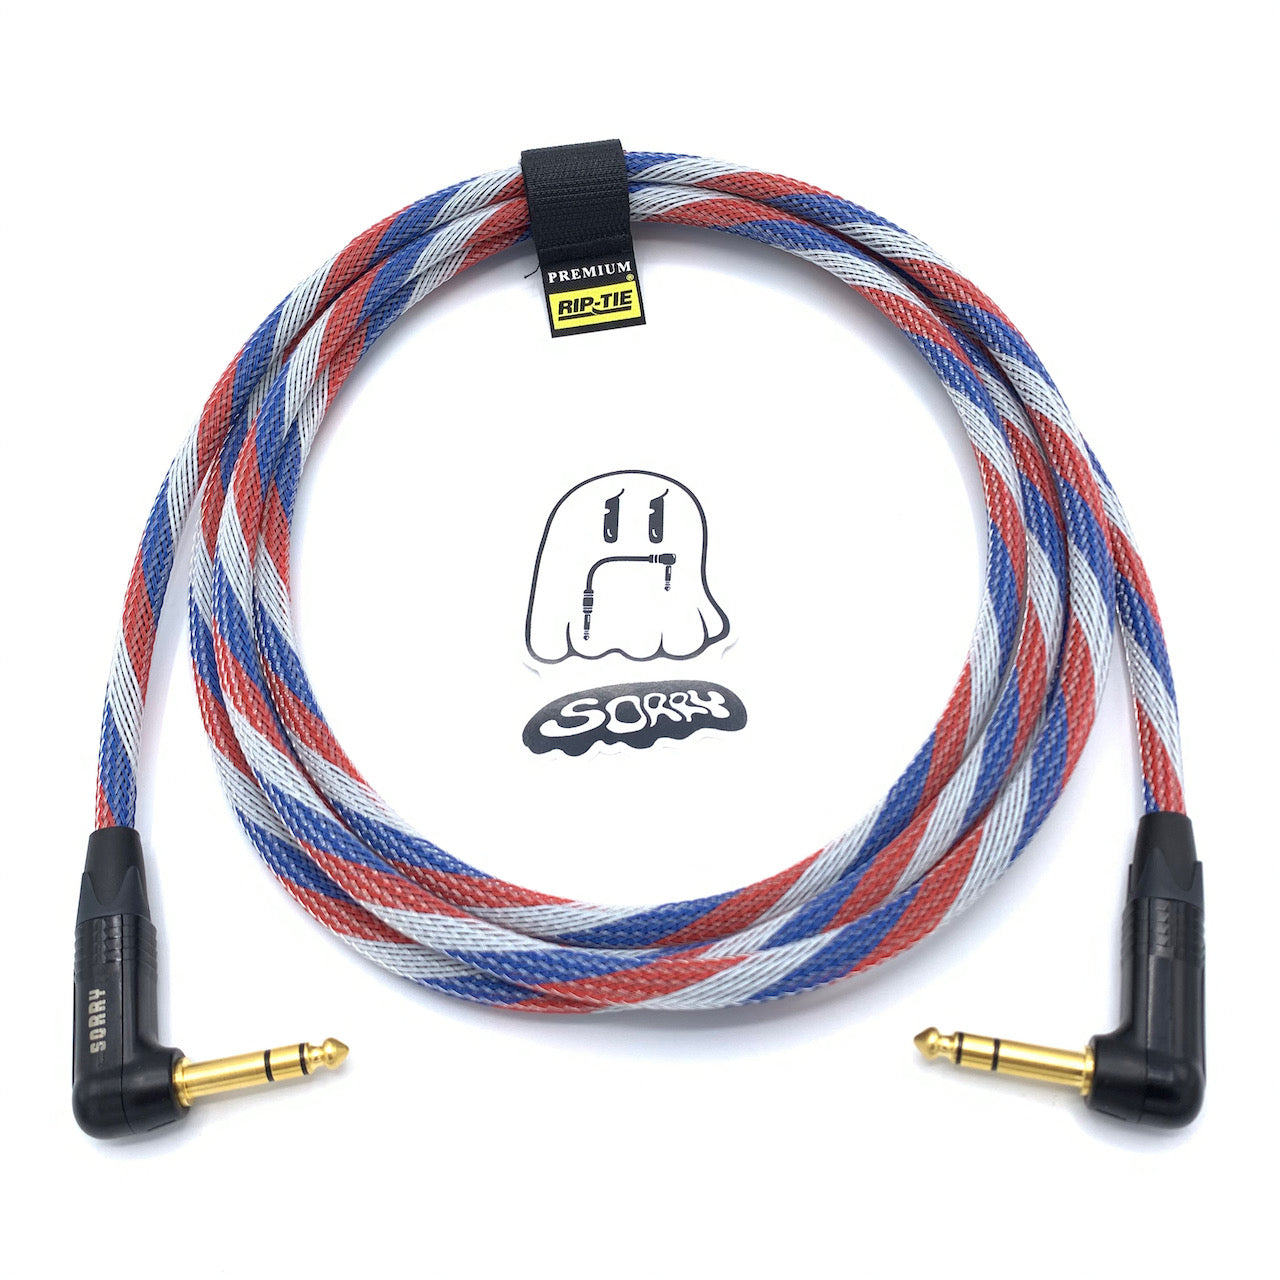 "SORRY 1/4"" Right TRS to 1/4"" Right TRS Balanced Cable - Patriot"